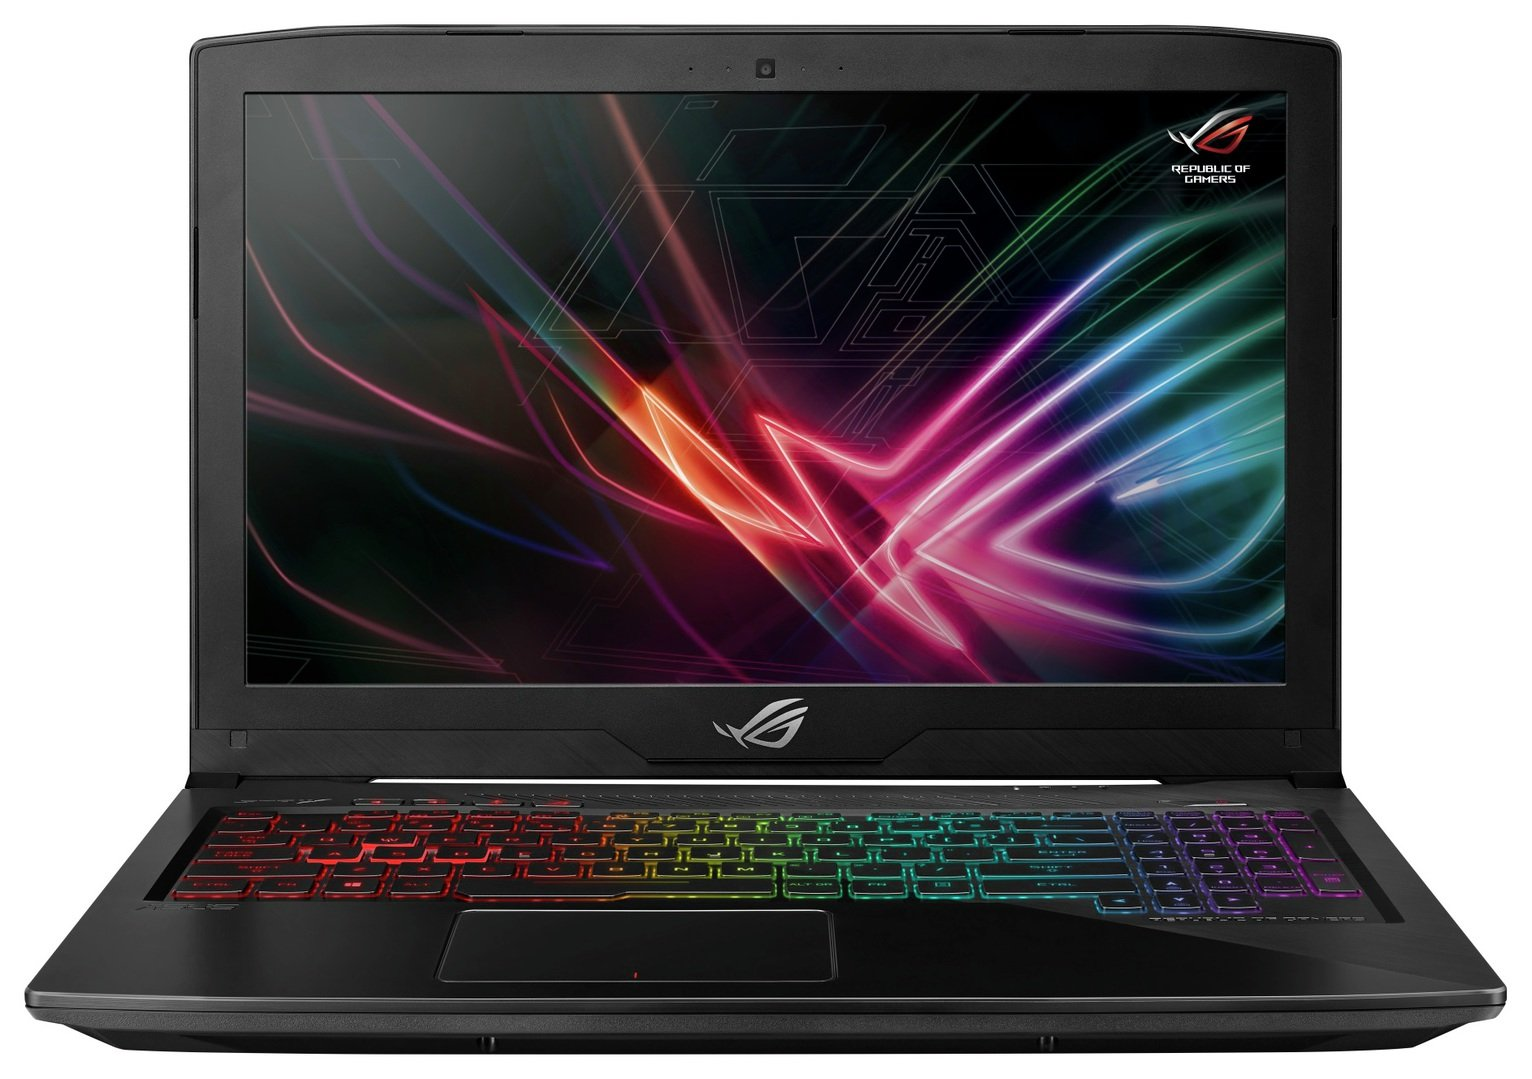 ASUS ROG GL503 VS i5 8GB 2TB 256GB GTX1070 Gaming Laptop